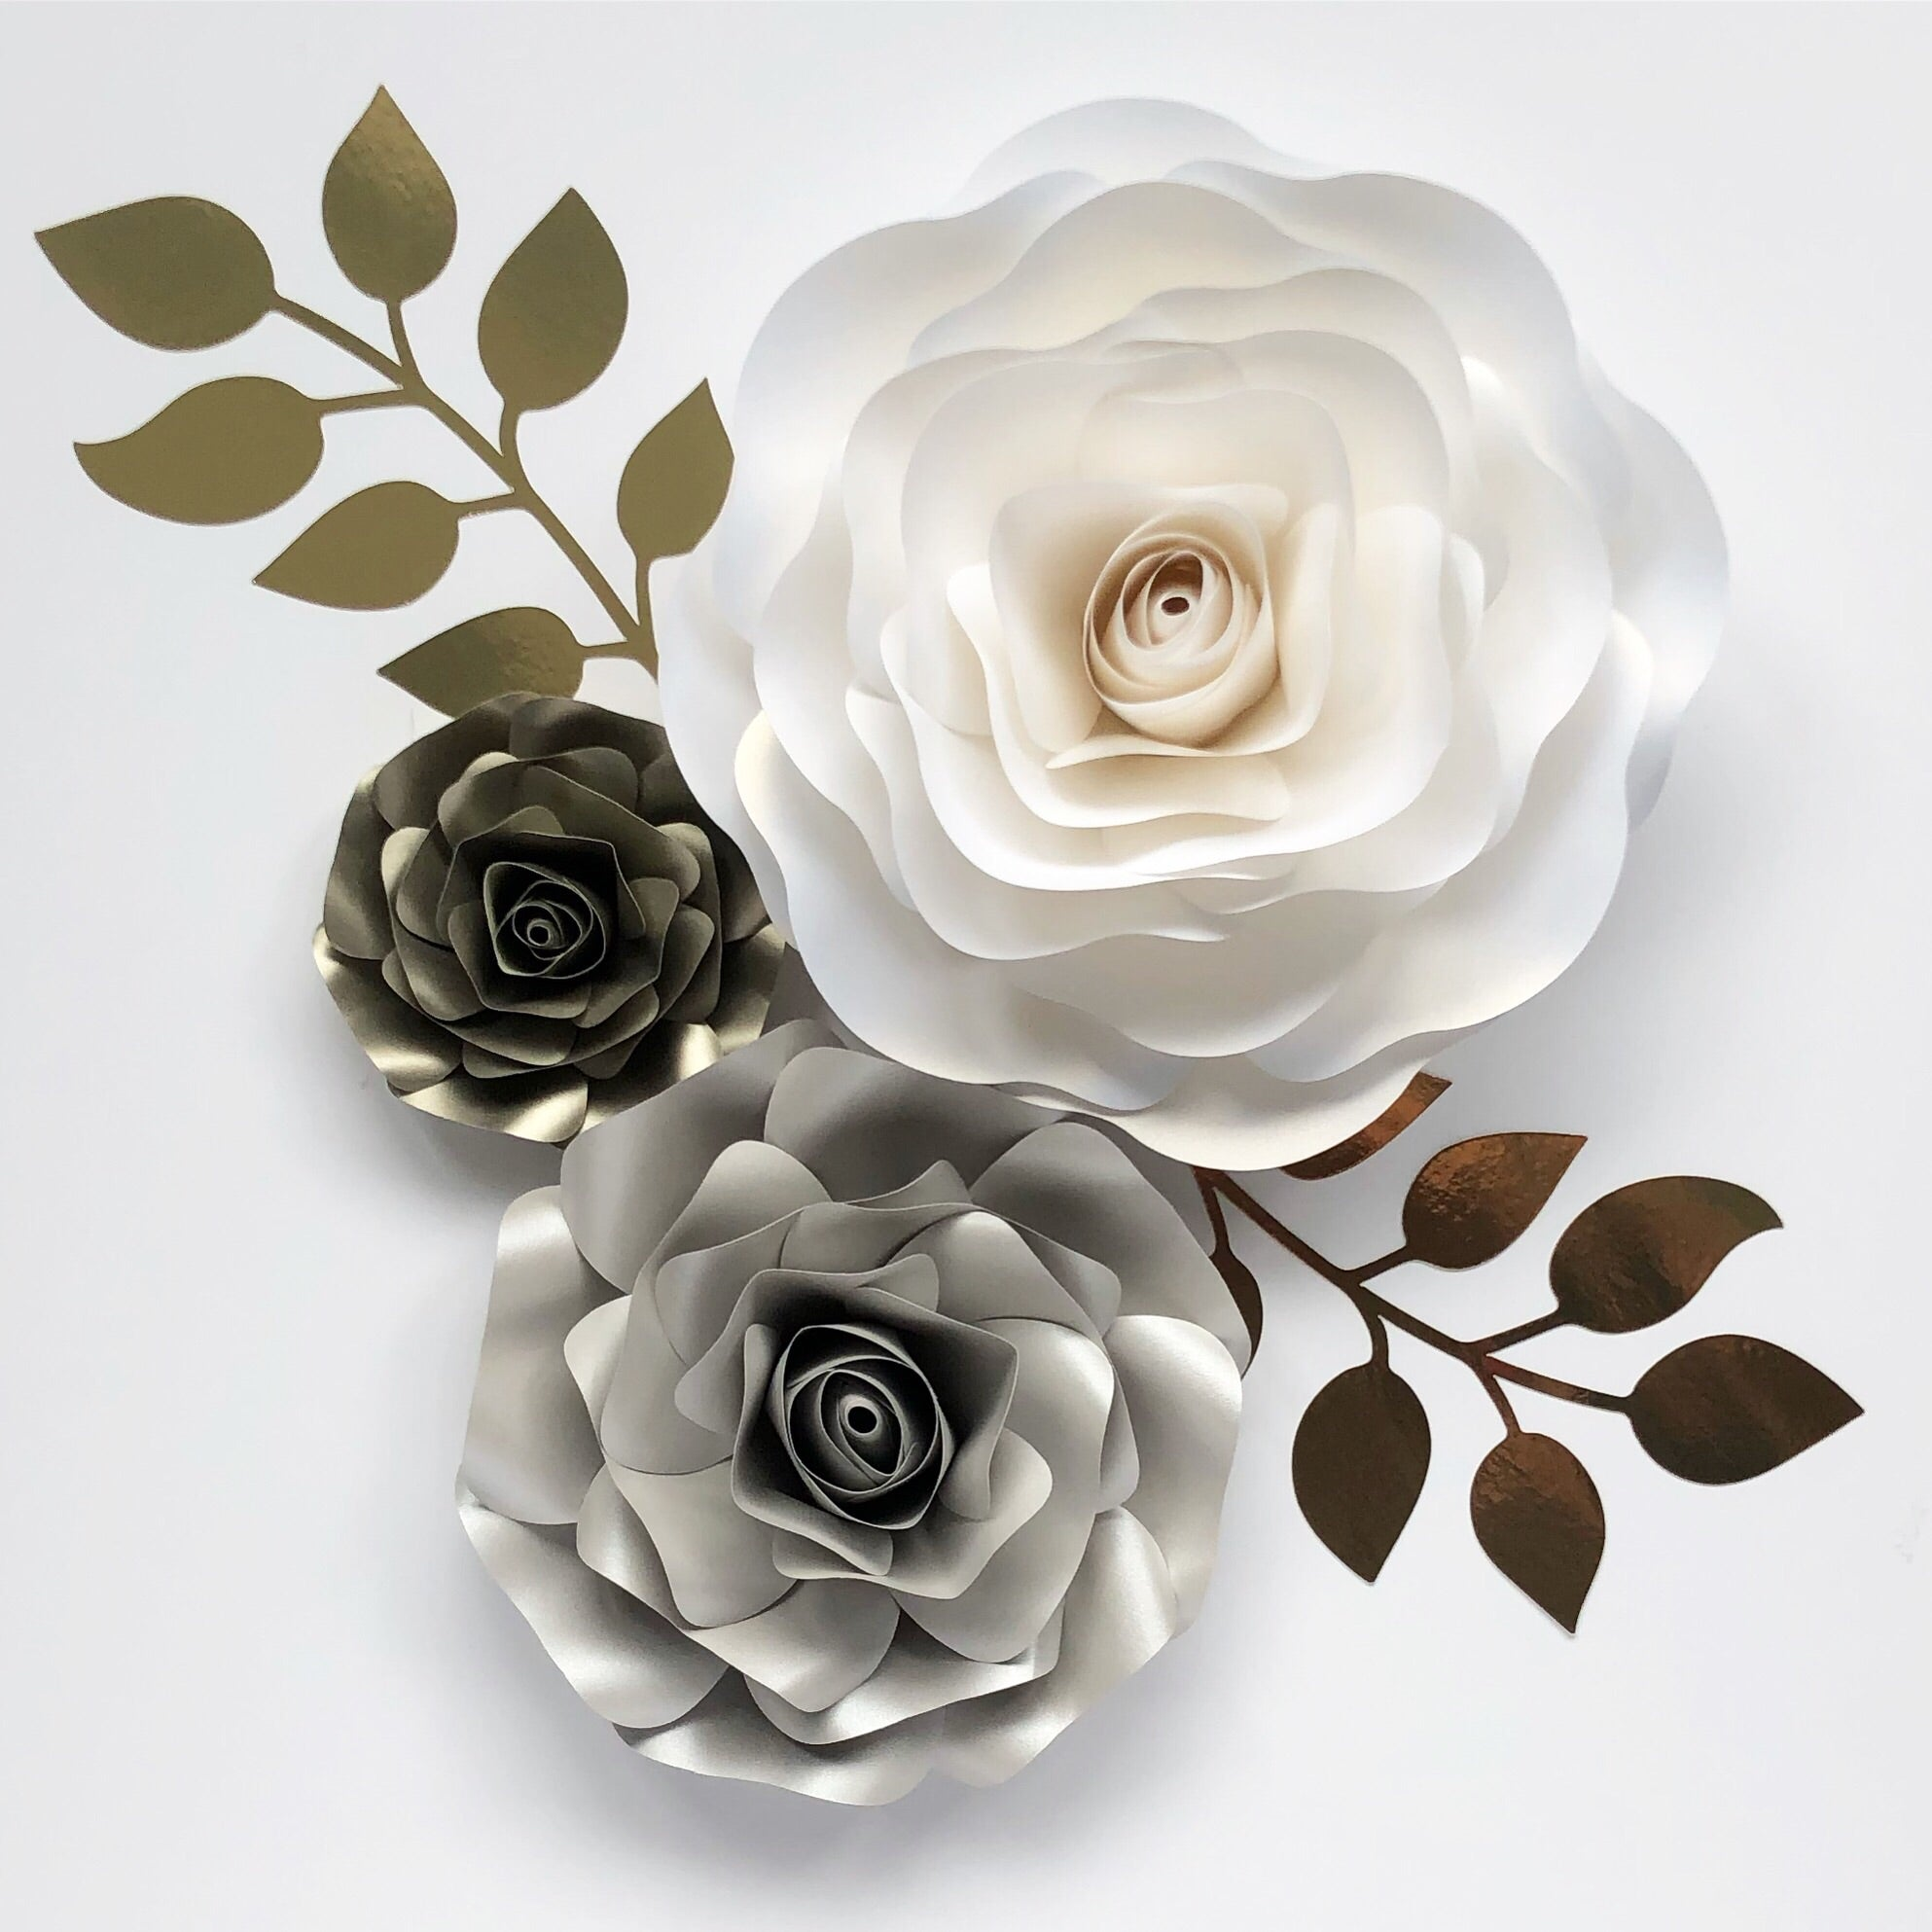 Ellie paper rose flower wall decor 3 piece with leaves, nursery decor, bedroom wall art